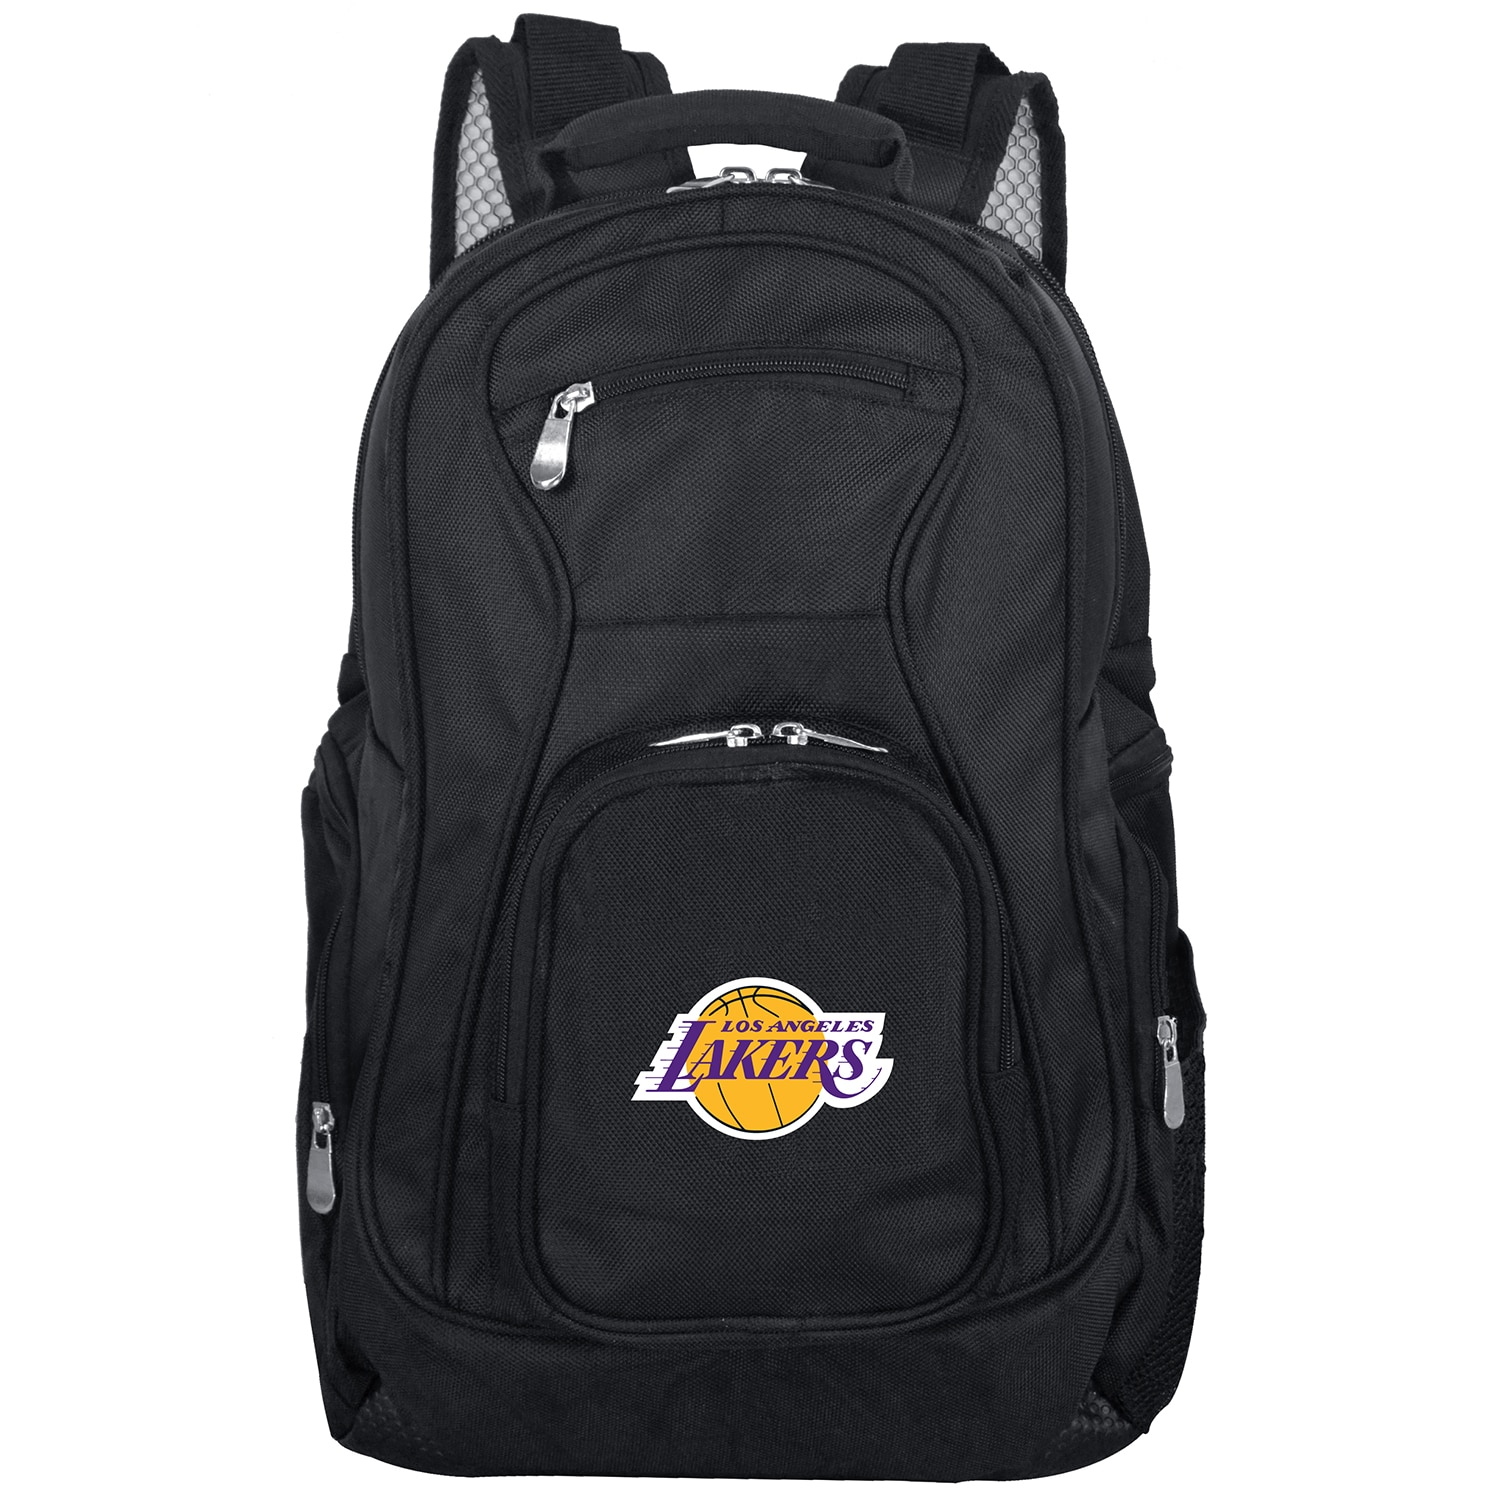 "Los Angeles Lakers 19"" Laptop Travel Backpack - Black"